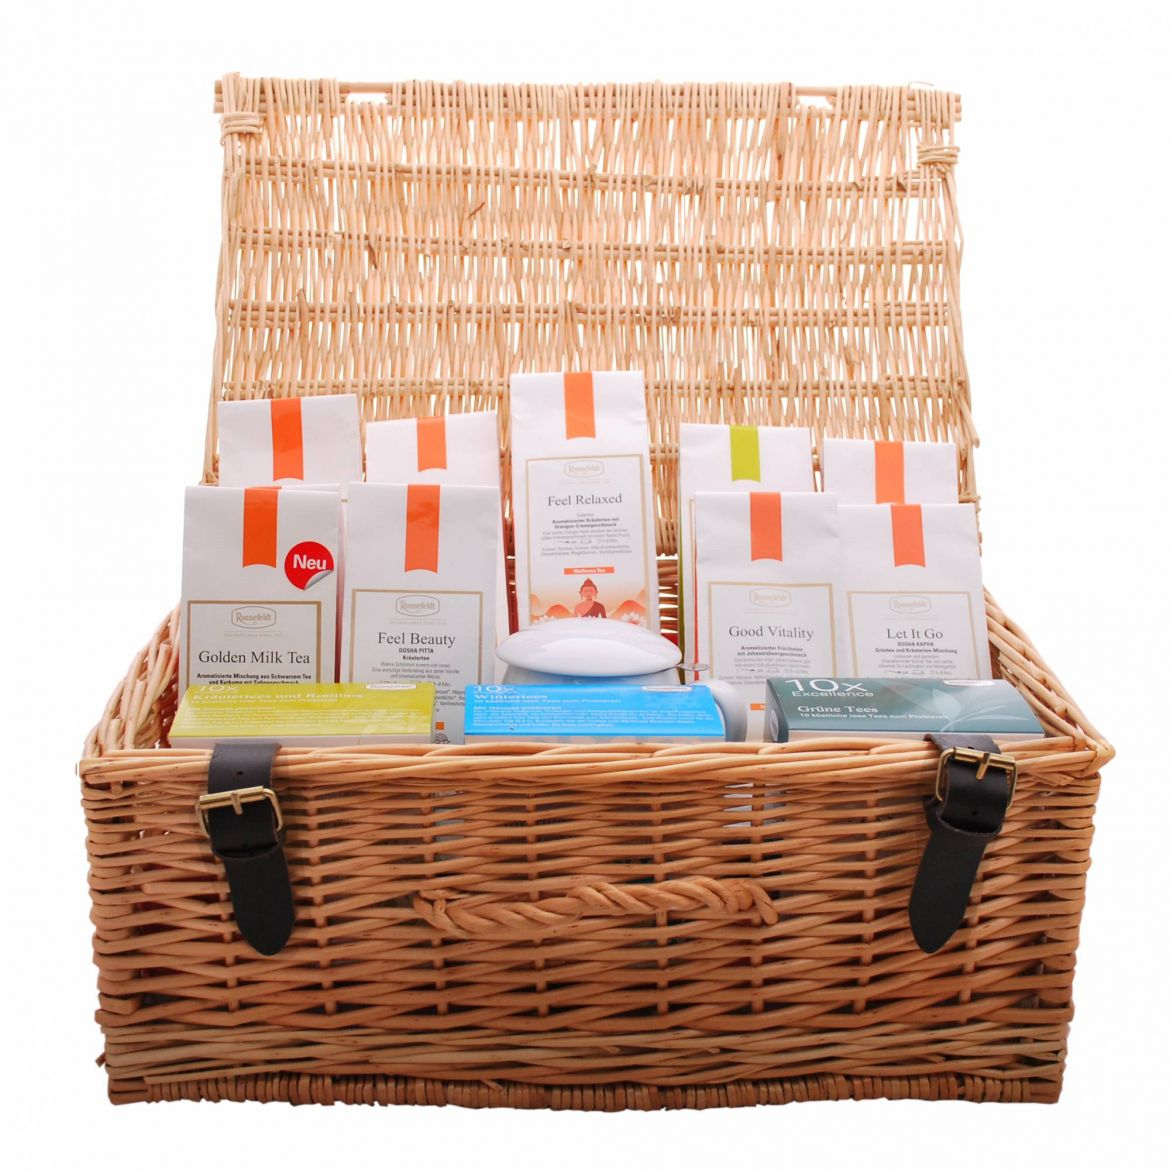 Bespoke Personalised Hampers